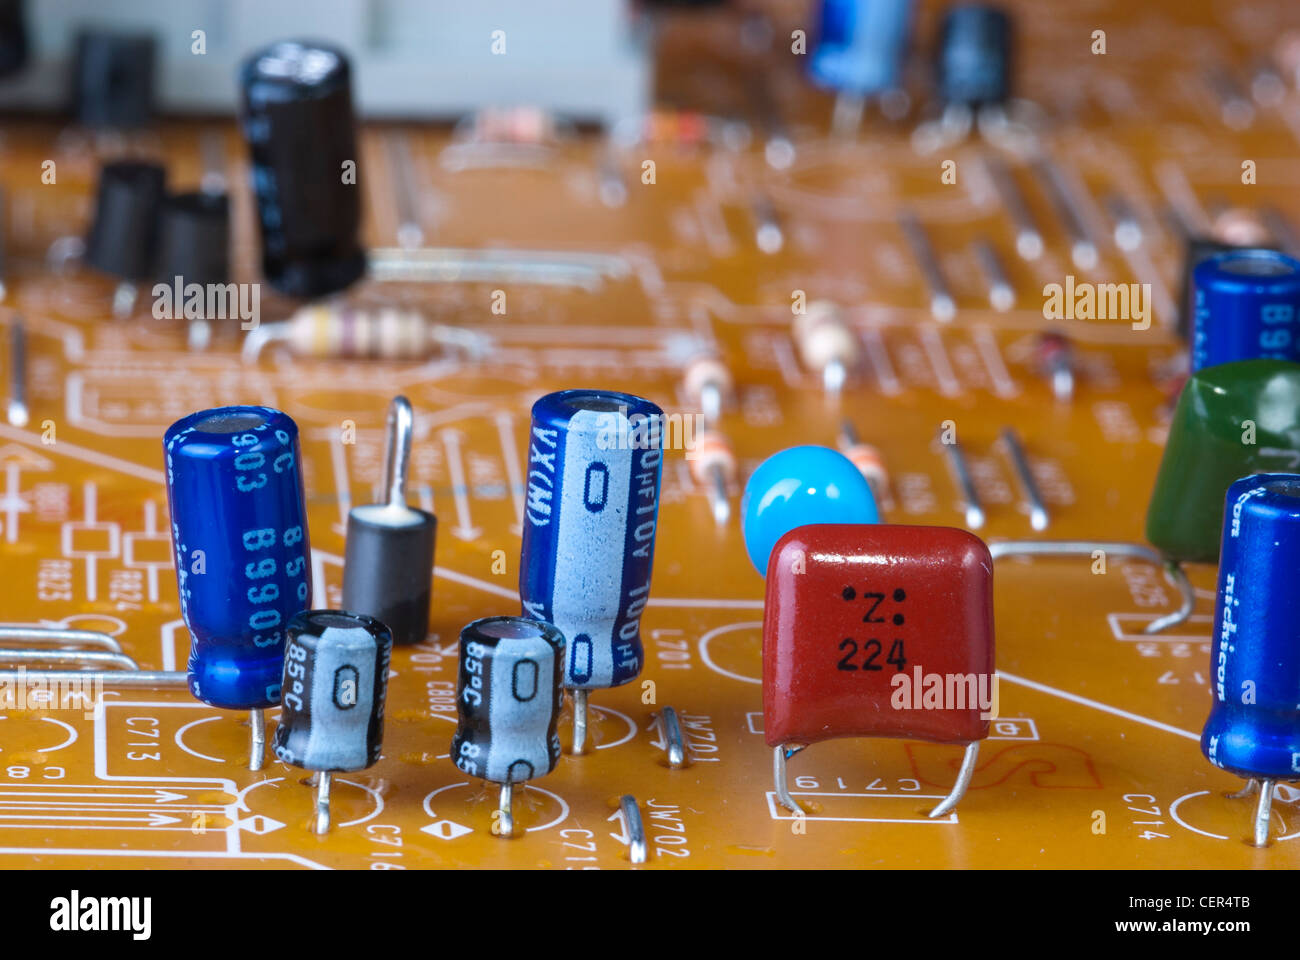 circuit board with chips and capacitors - Stock Image